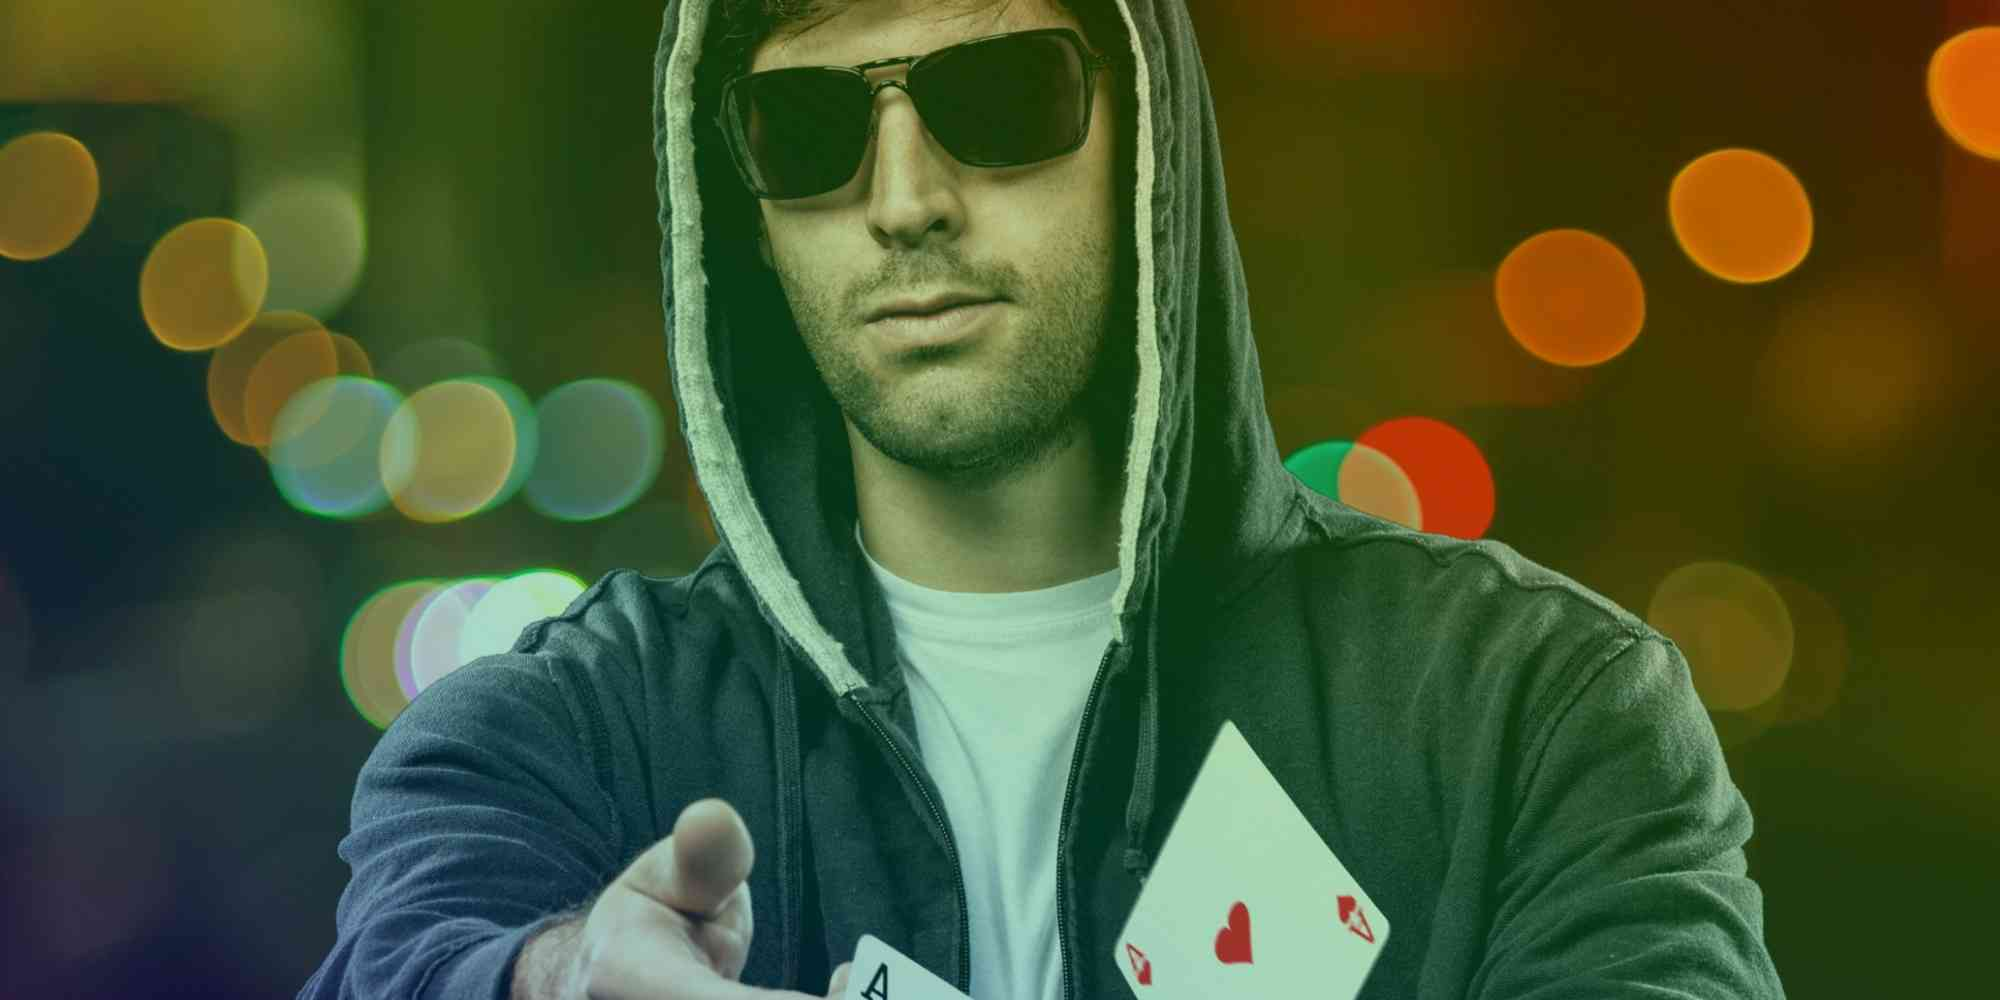 Why Do Poker Players Wear Sunglasses At a Poker Table?